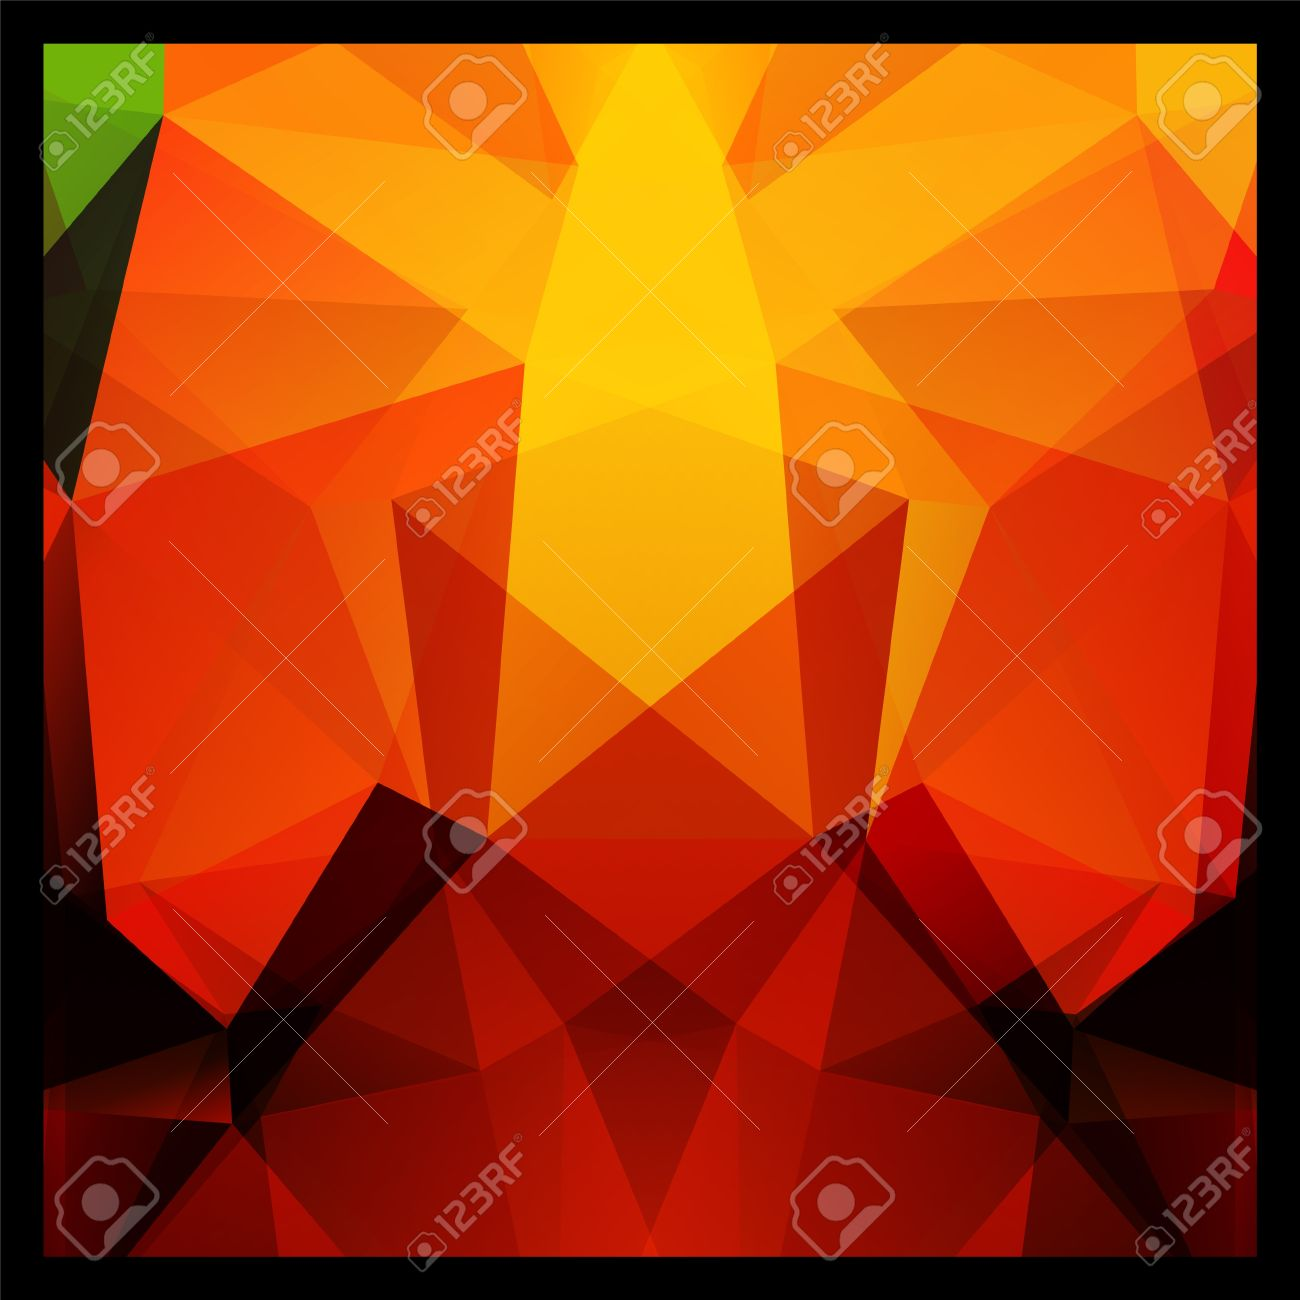 Colorful Red Yellow And Black Abstract Geometric Polygon Background